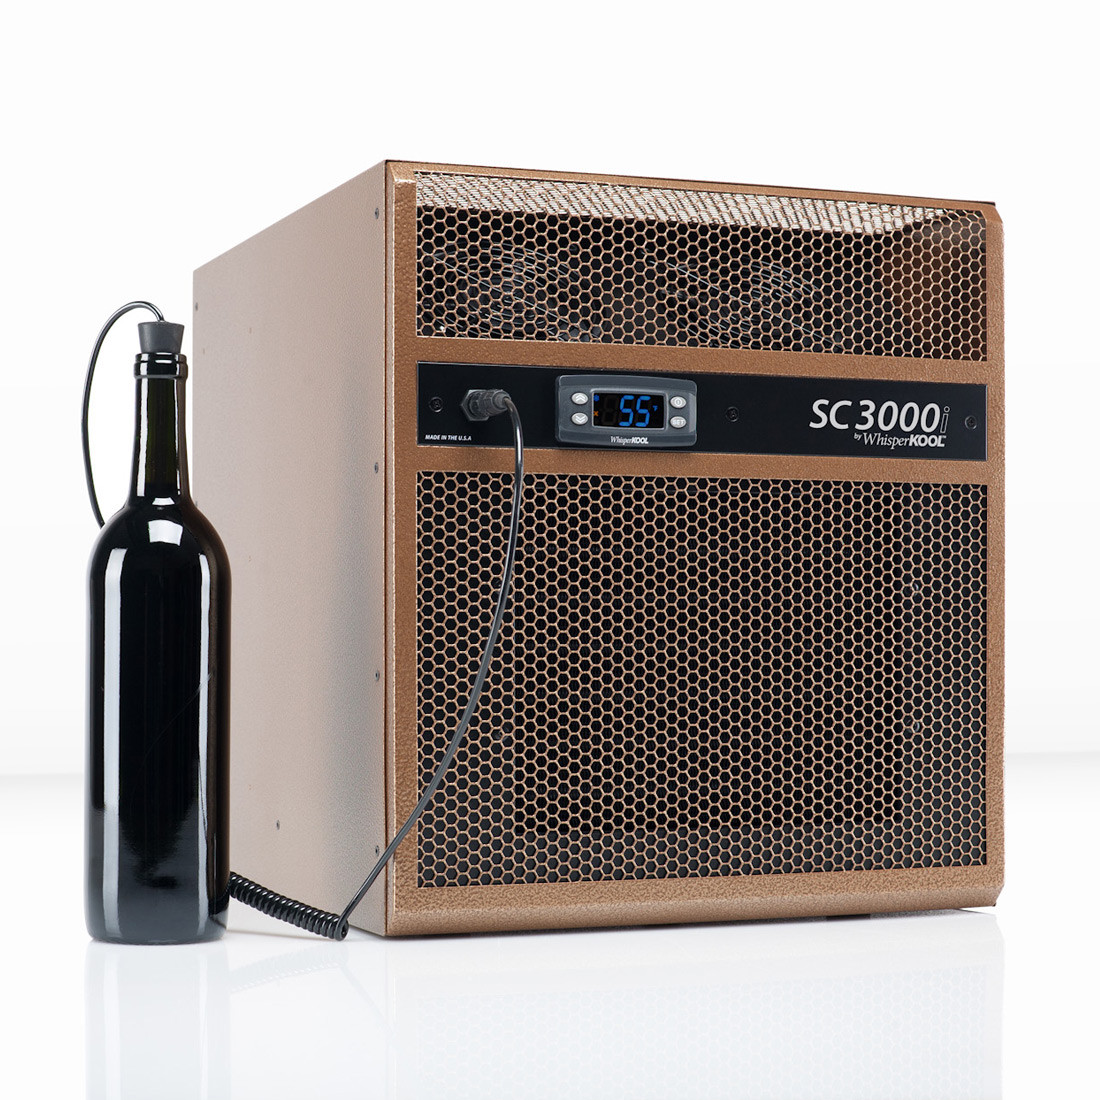 Best ideas about Wine Cellar Cooling Units . Save or Pin WhisperKOOL SC 3000i Through Wall Wine Cellar Cooling Now.